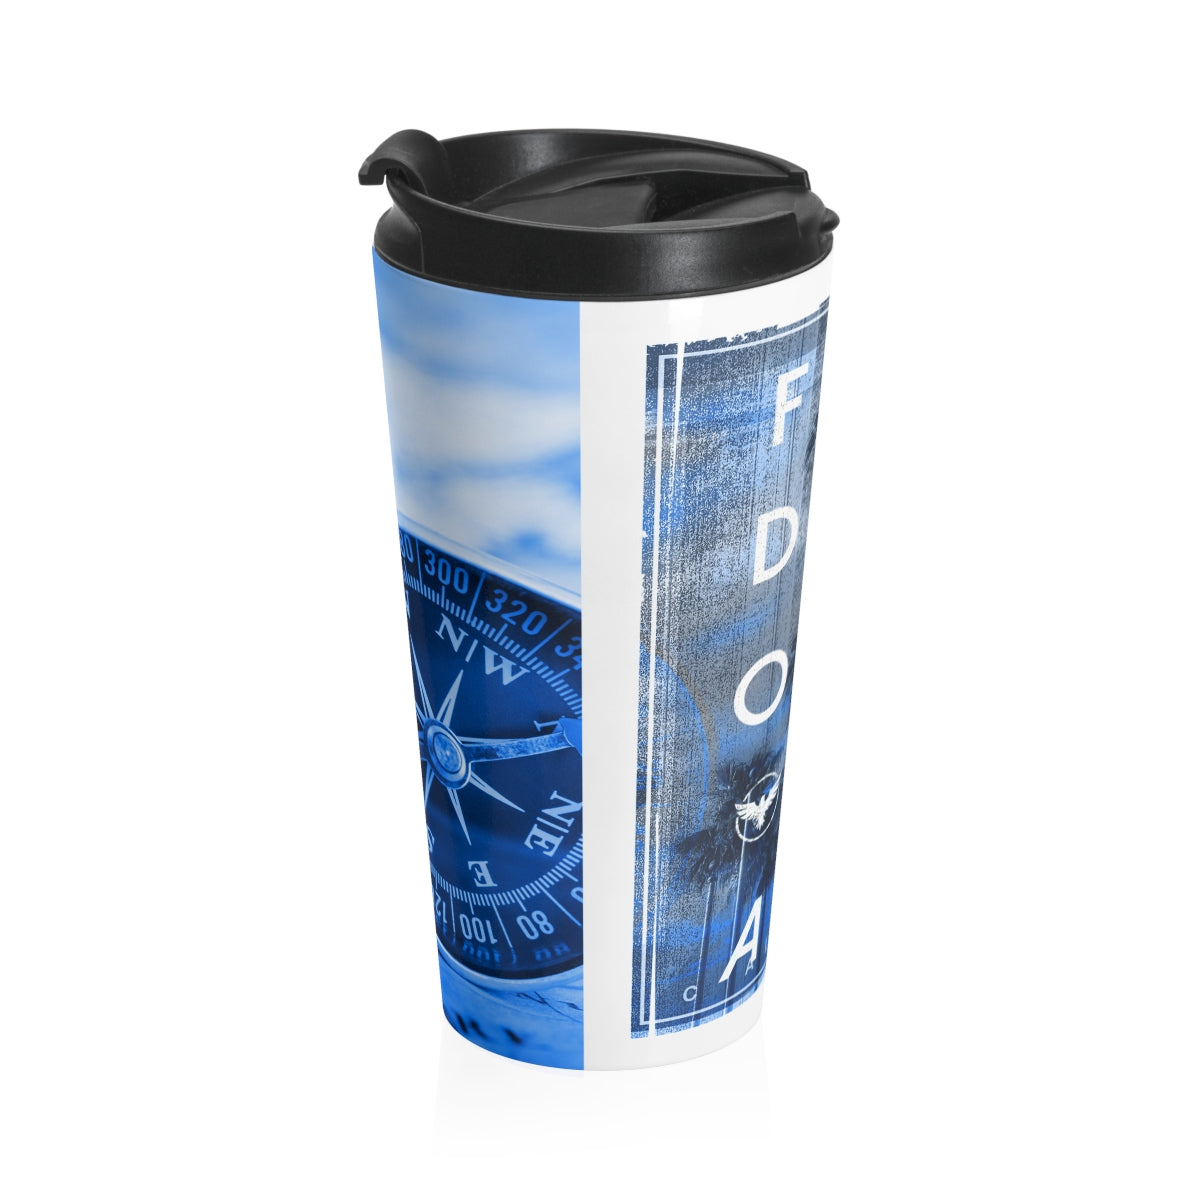 Explorer DNA Stainless Steel Travel Mug - Find Your Coast Supply Co.